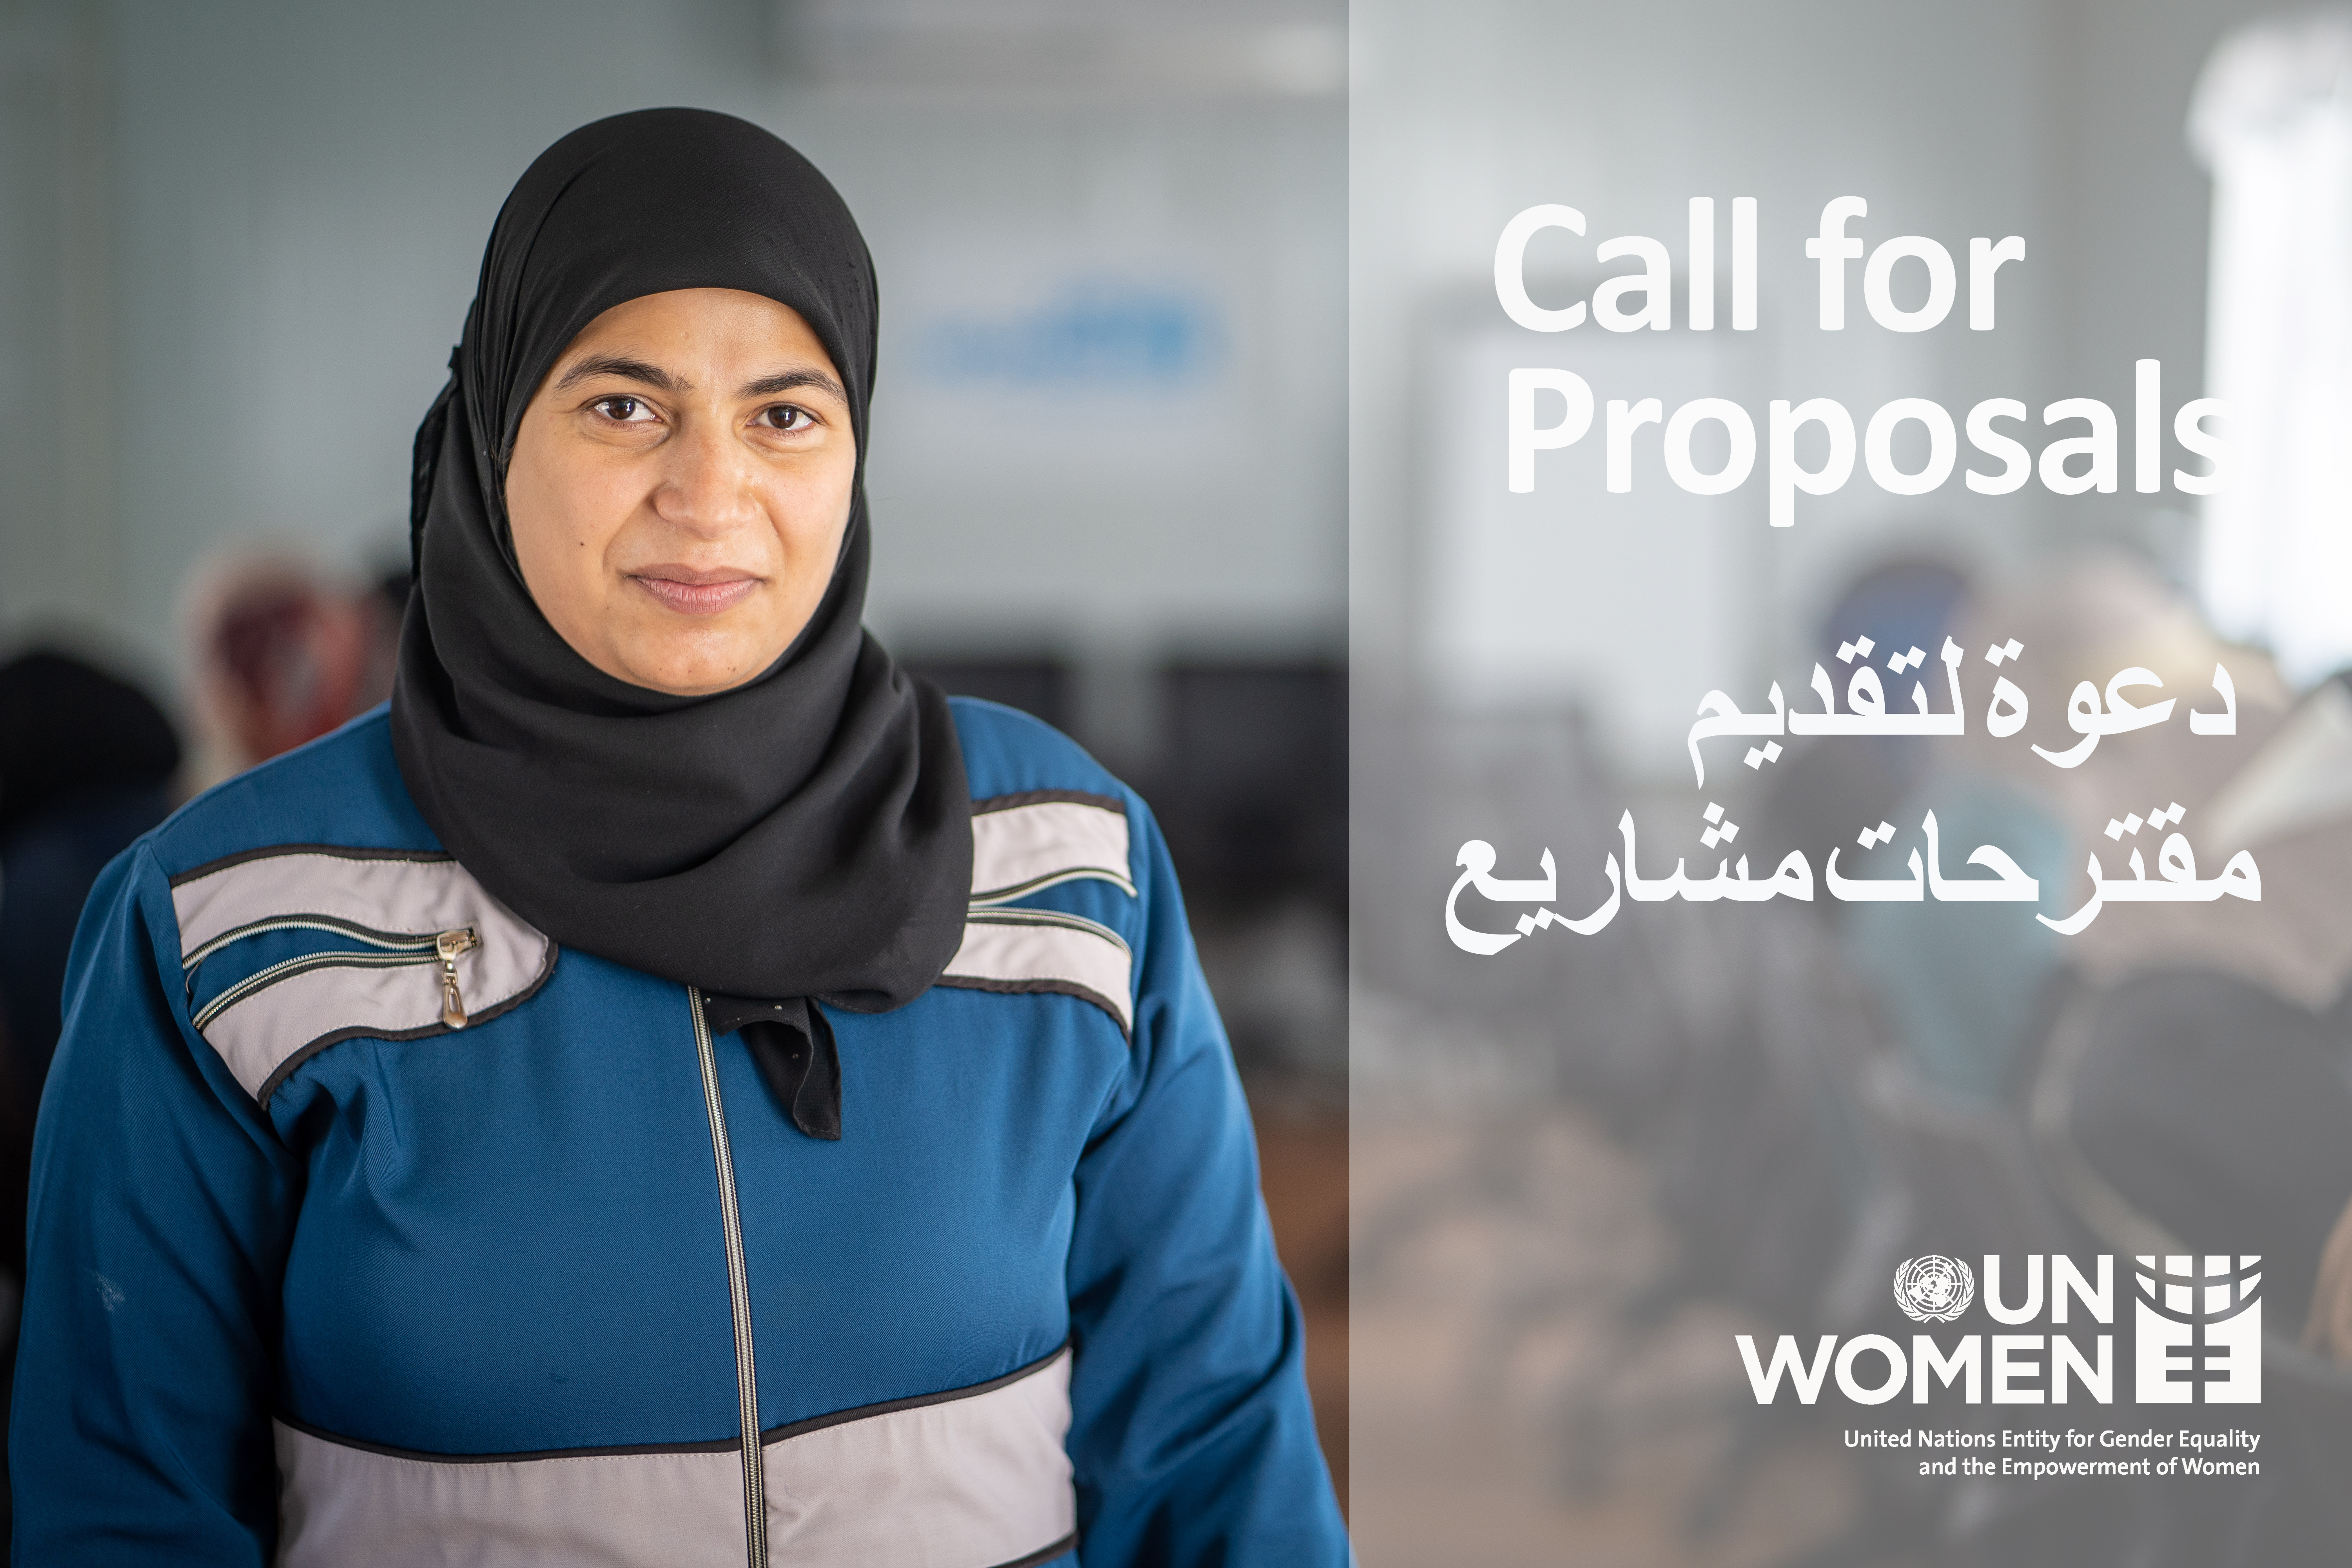 UN Women Jordan announces a call for proposal on 'Strengthening Capacities of Women's Civil Society Organizations'